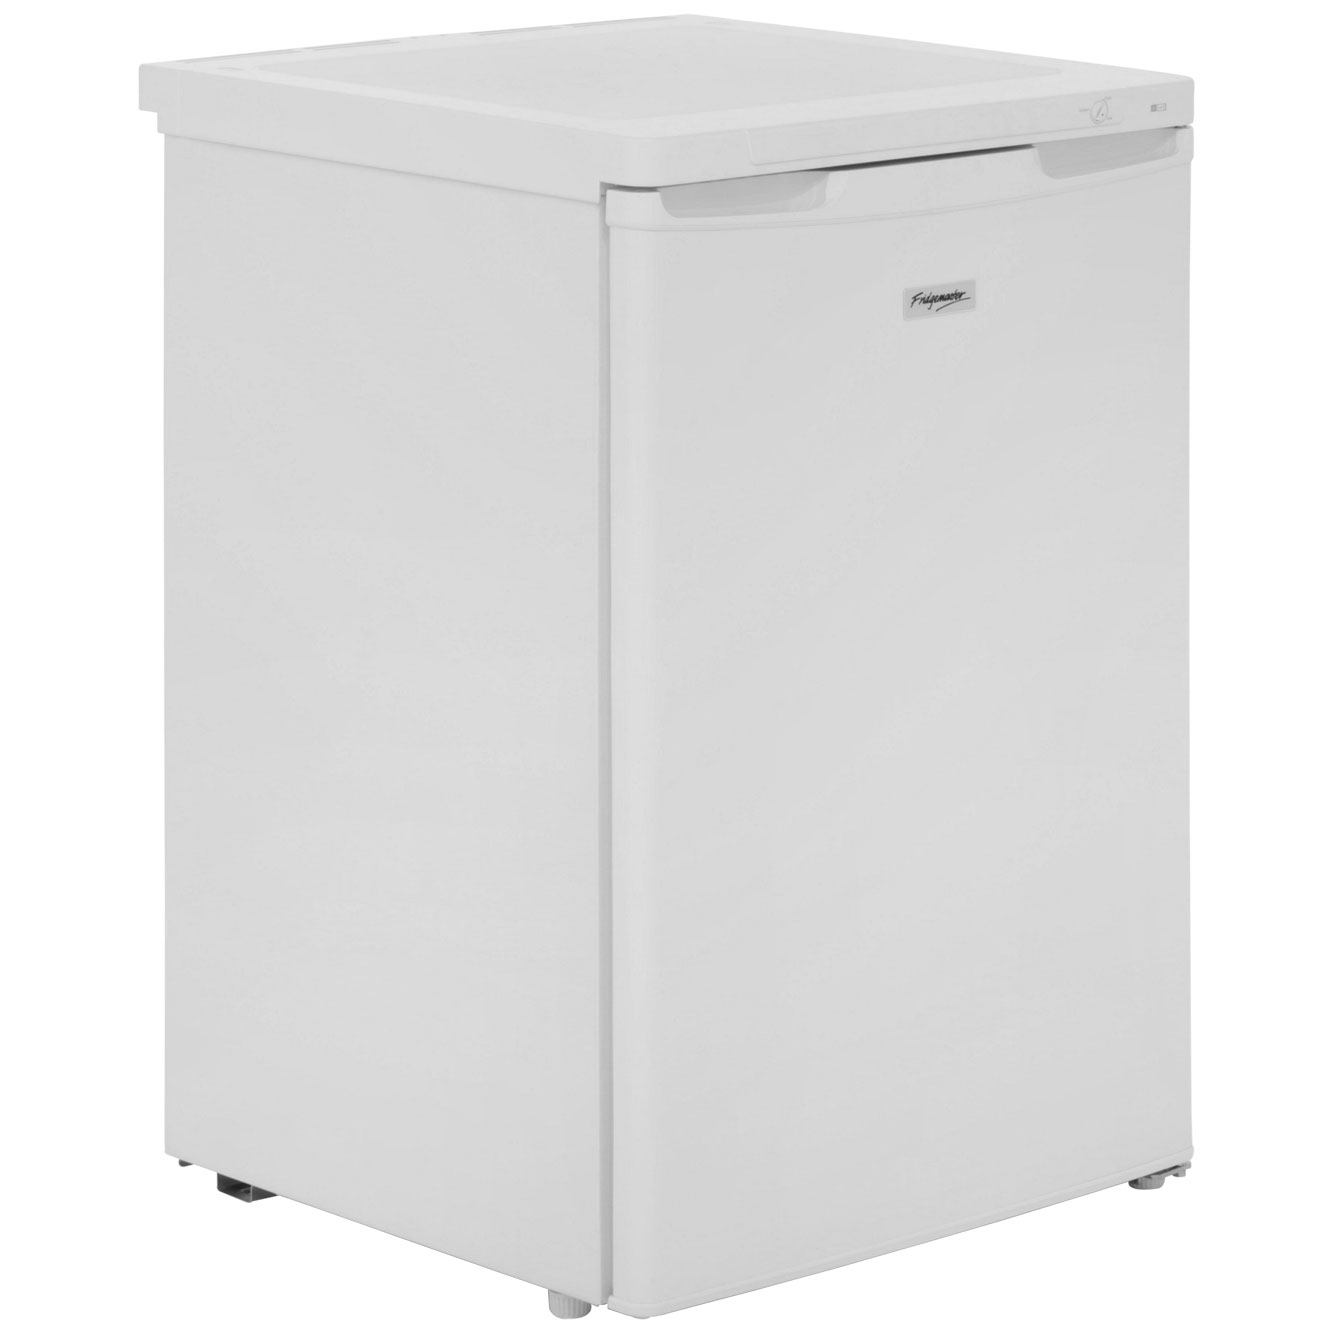 Fridgemaster MUZ5580 Under Counter Freezer - White